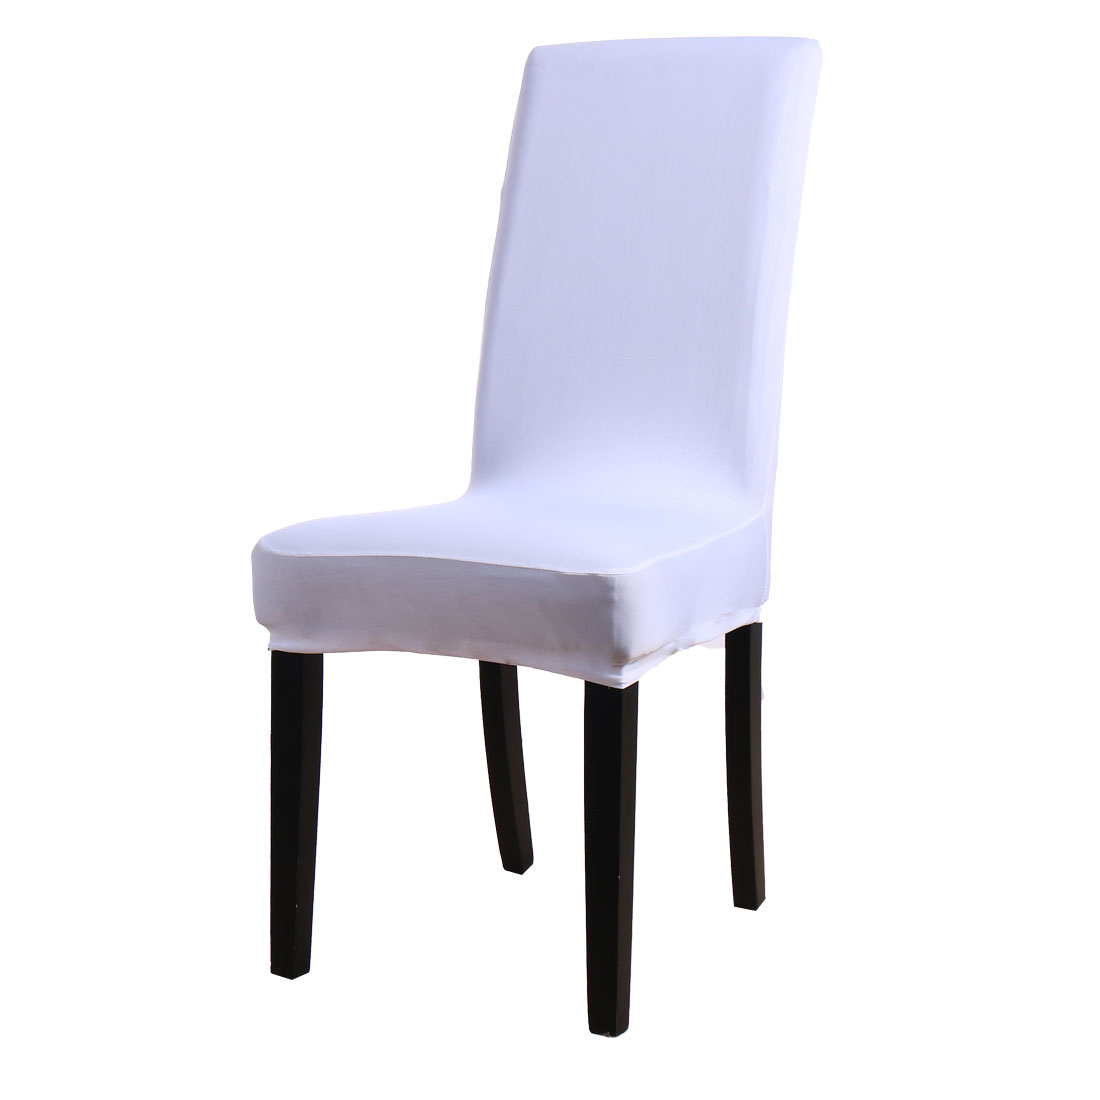 black chair covers walmart and white dining room chairs 4pcs stretch spandex short slipcover cover com